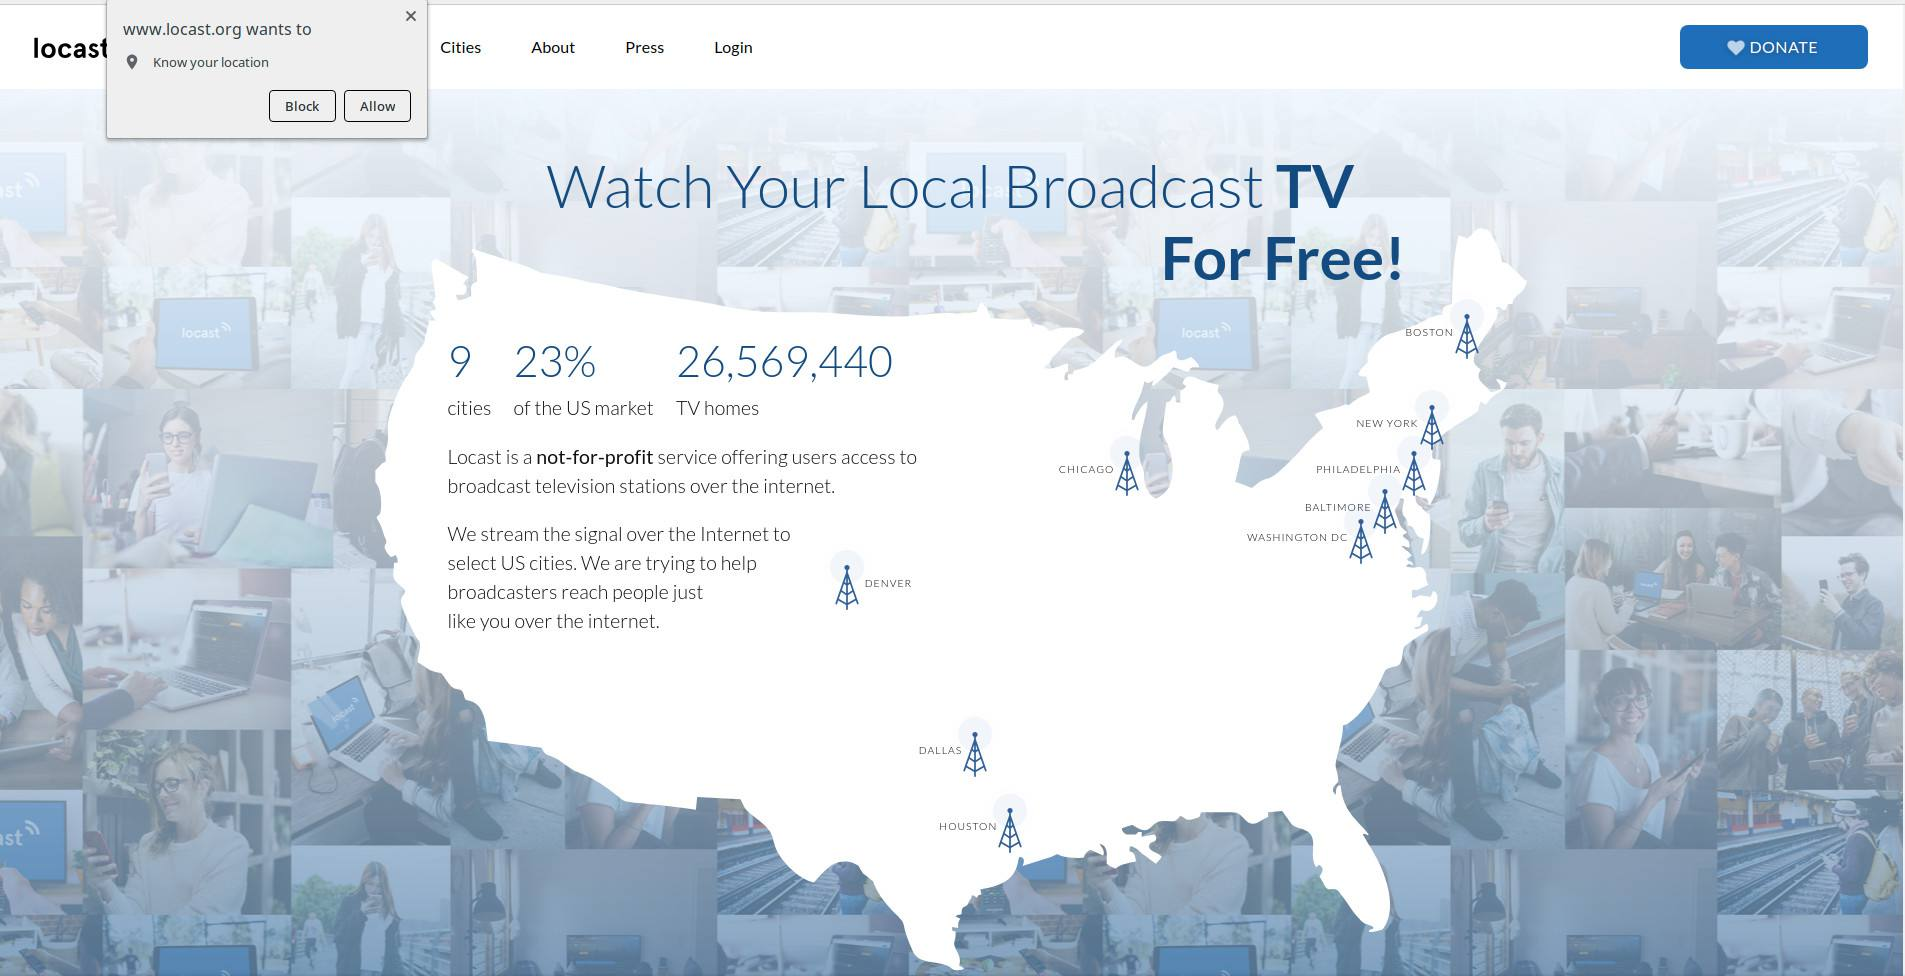 How to Get Free Local TV With Locast